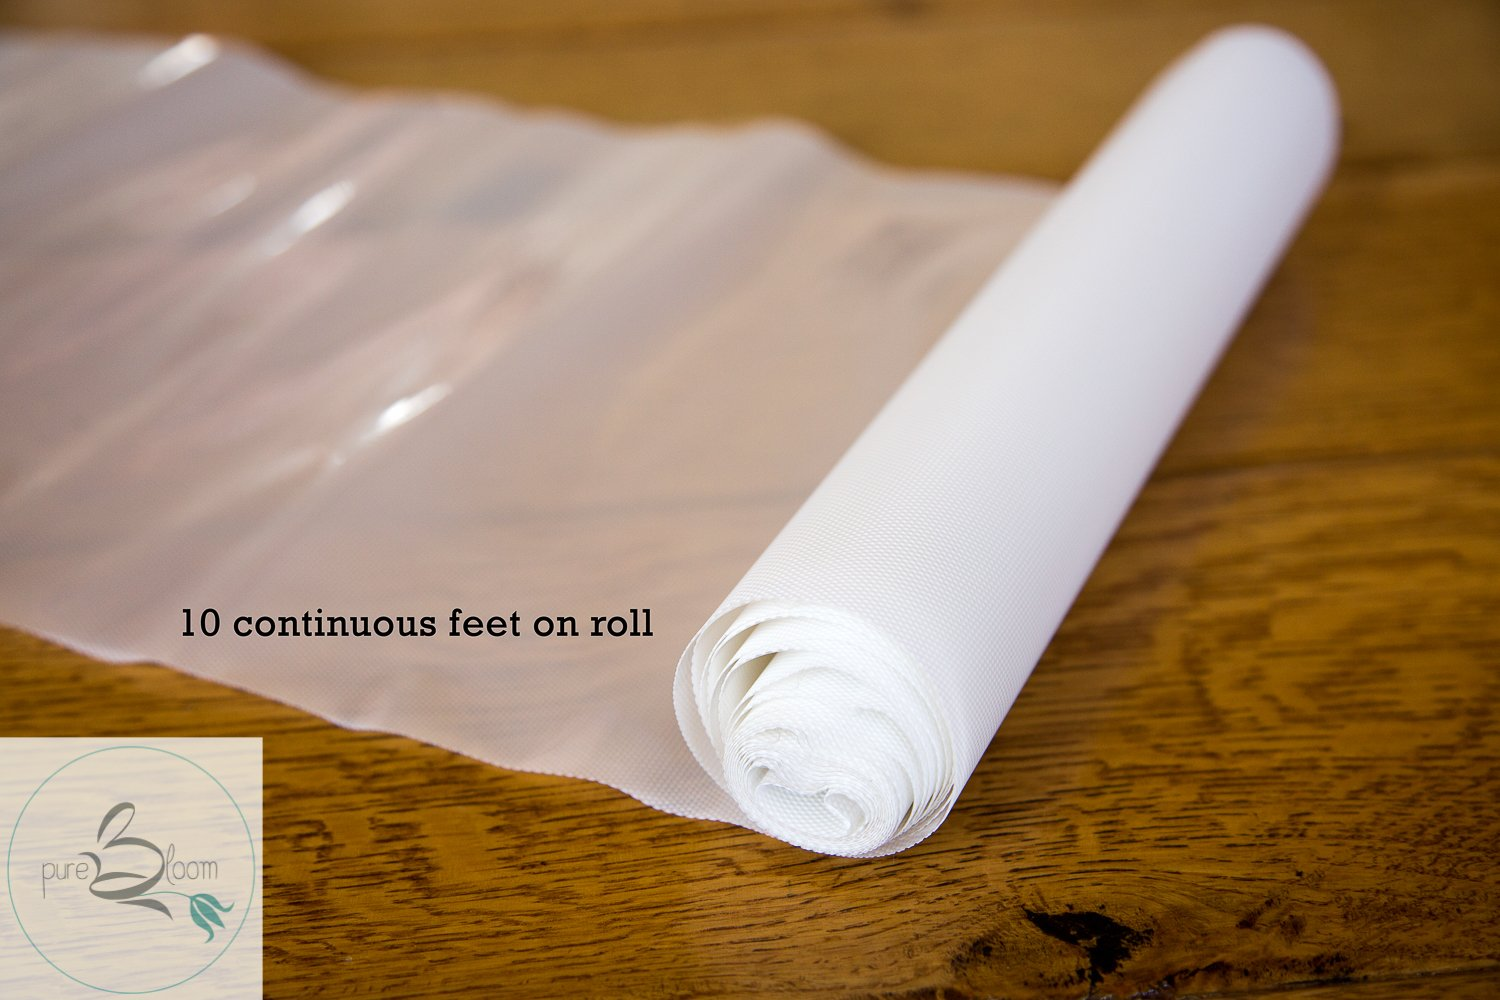 10 ft Continuous Roll for Hot Fix Iron On Rhinestones Heat Transfer Tape by PureBloom Products x 12.5 Iron On Transfer Paper